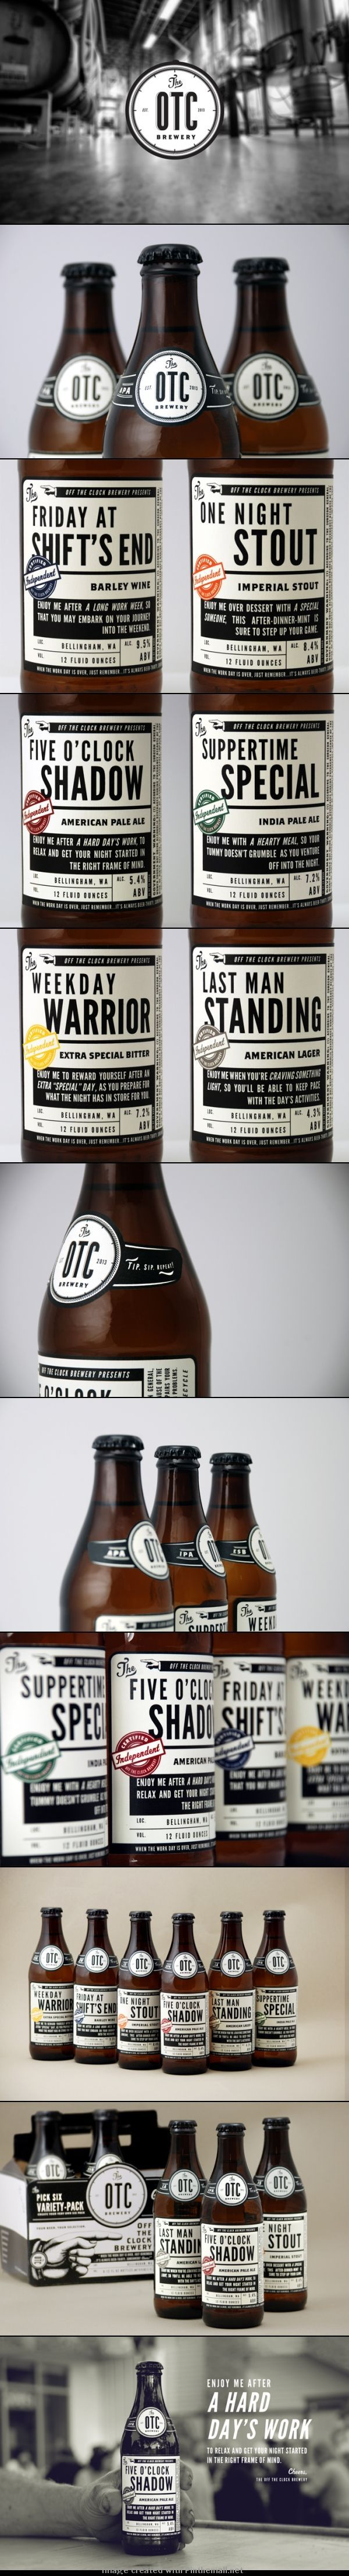 James J. Miller Design was tasked to design the packaging for The OTC Brewery. It's stark, contrasty design and creative copywriting brought this project to life.